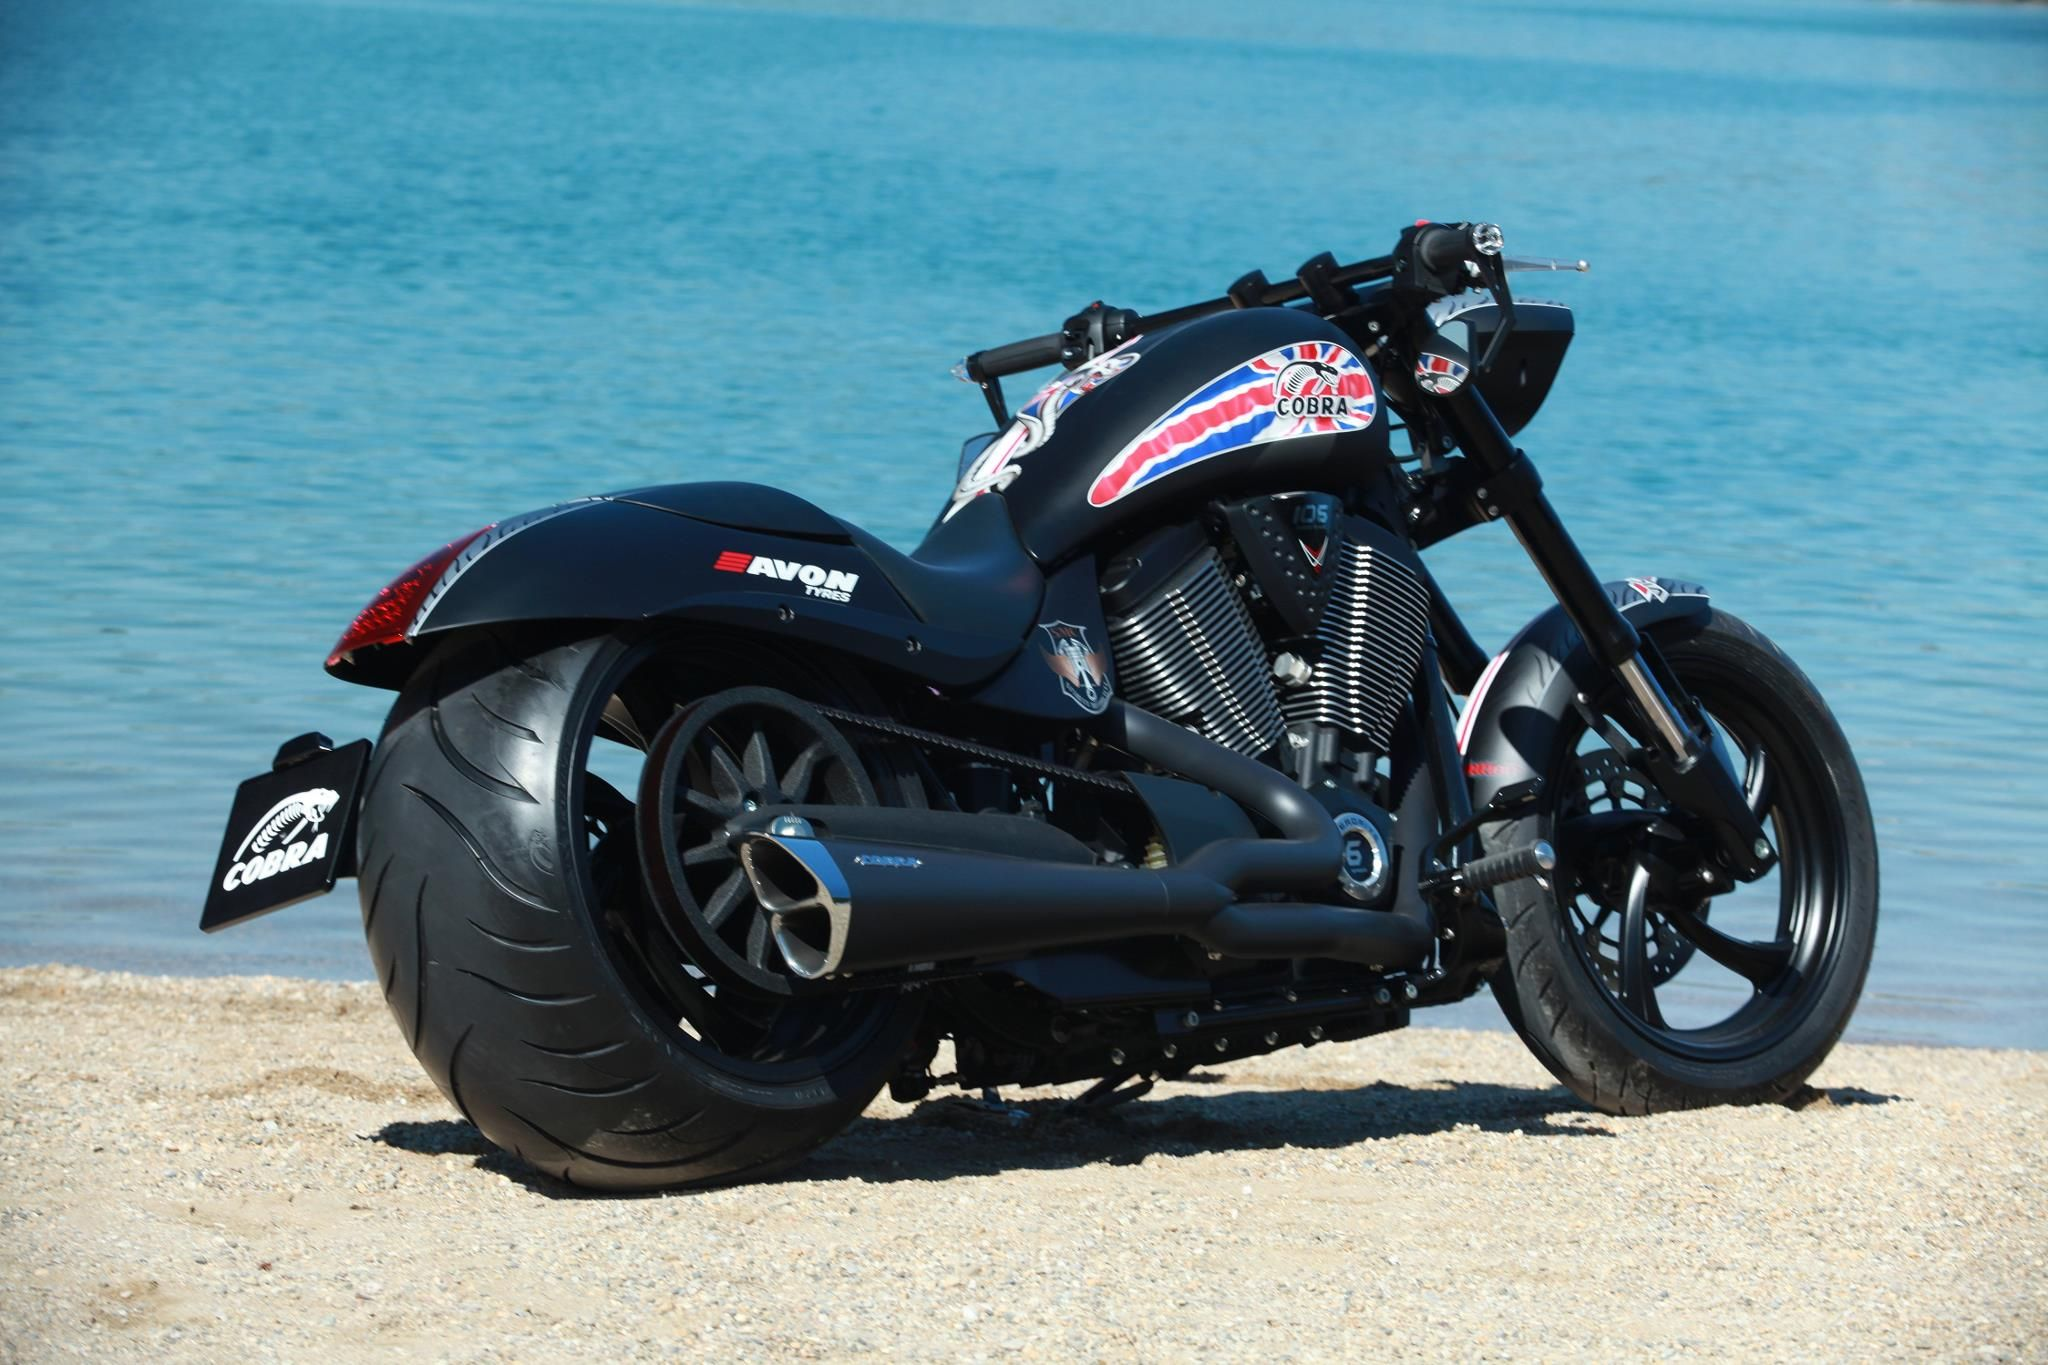 Victory Motorcycle Parts >> Styrian Motorcycles Victory Motorcycle Parts From Austria Victory